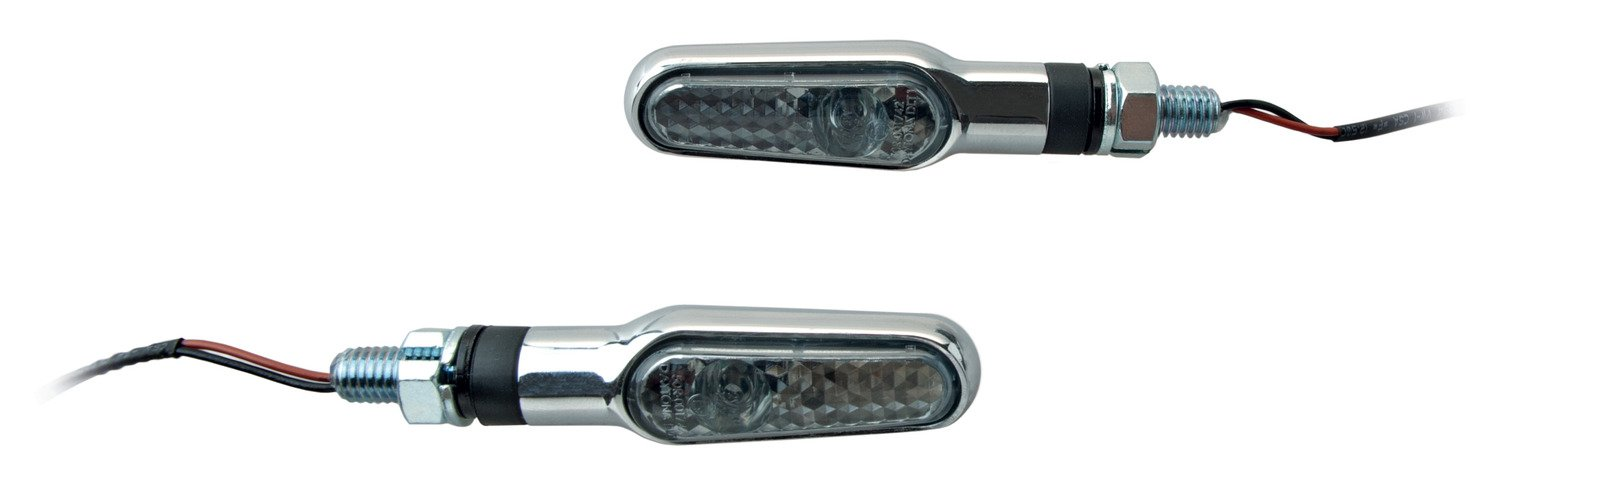 Yamaha SR400 & SR500 Daytona Chrome LED R/H & L/H Turn Signal Set